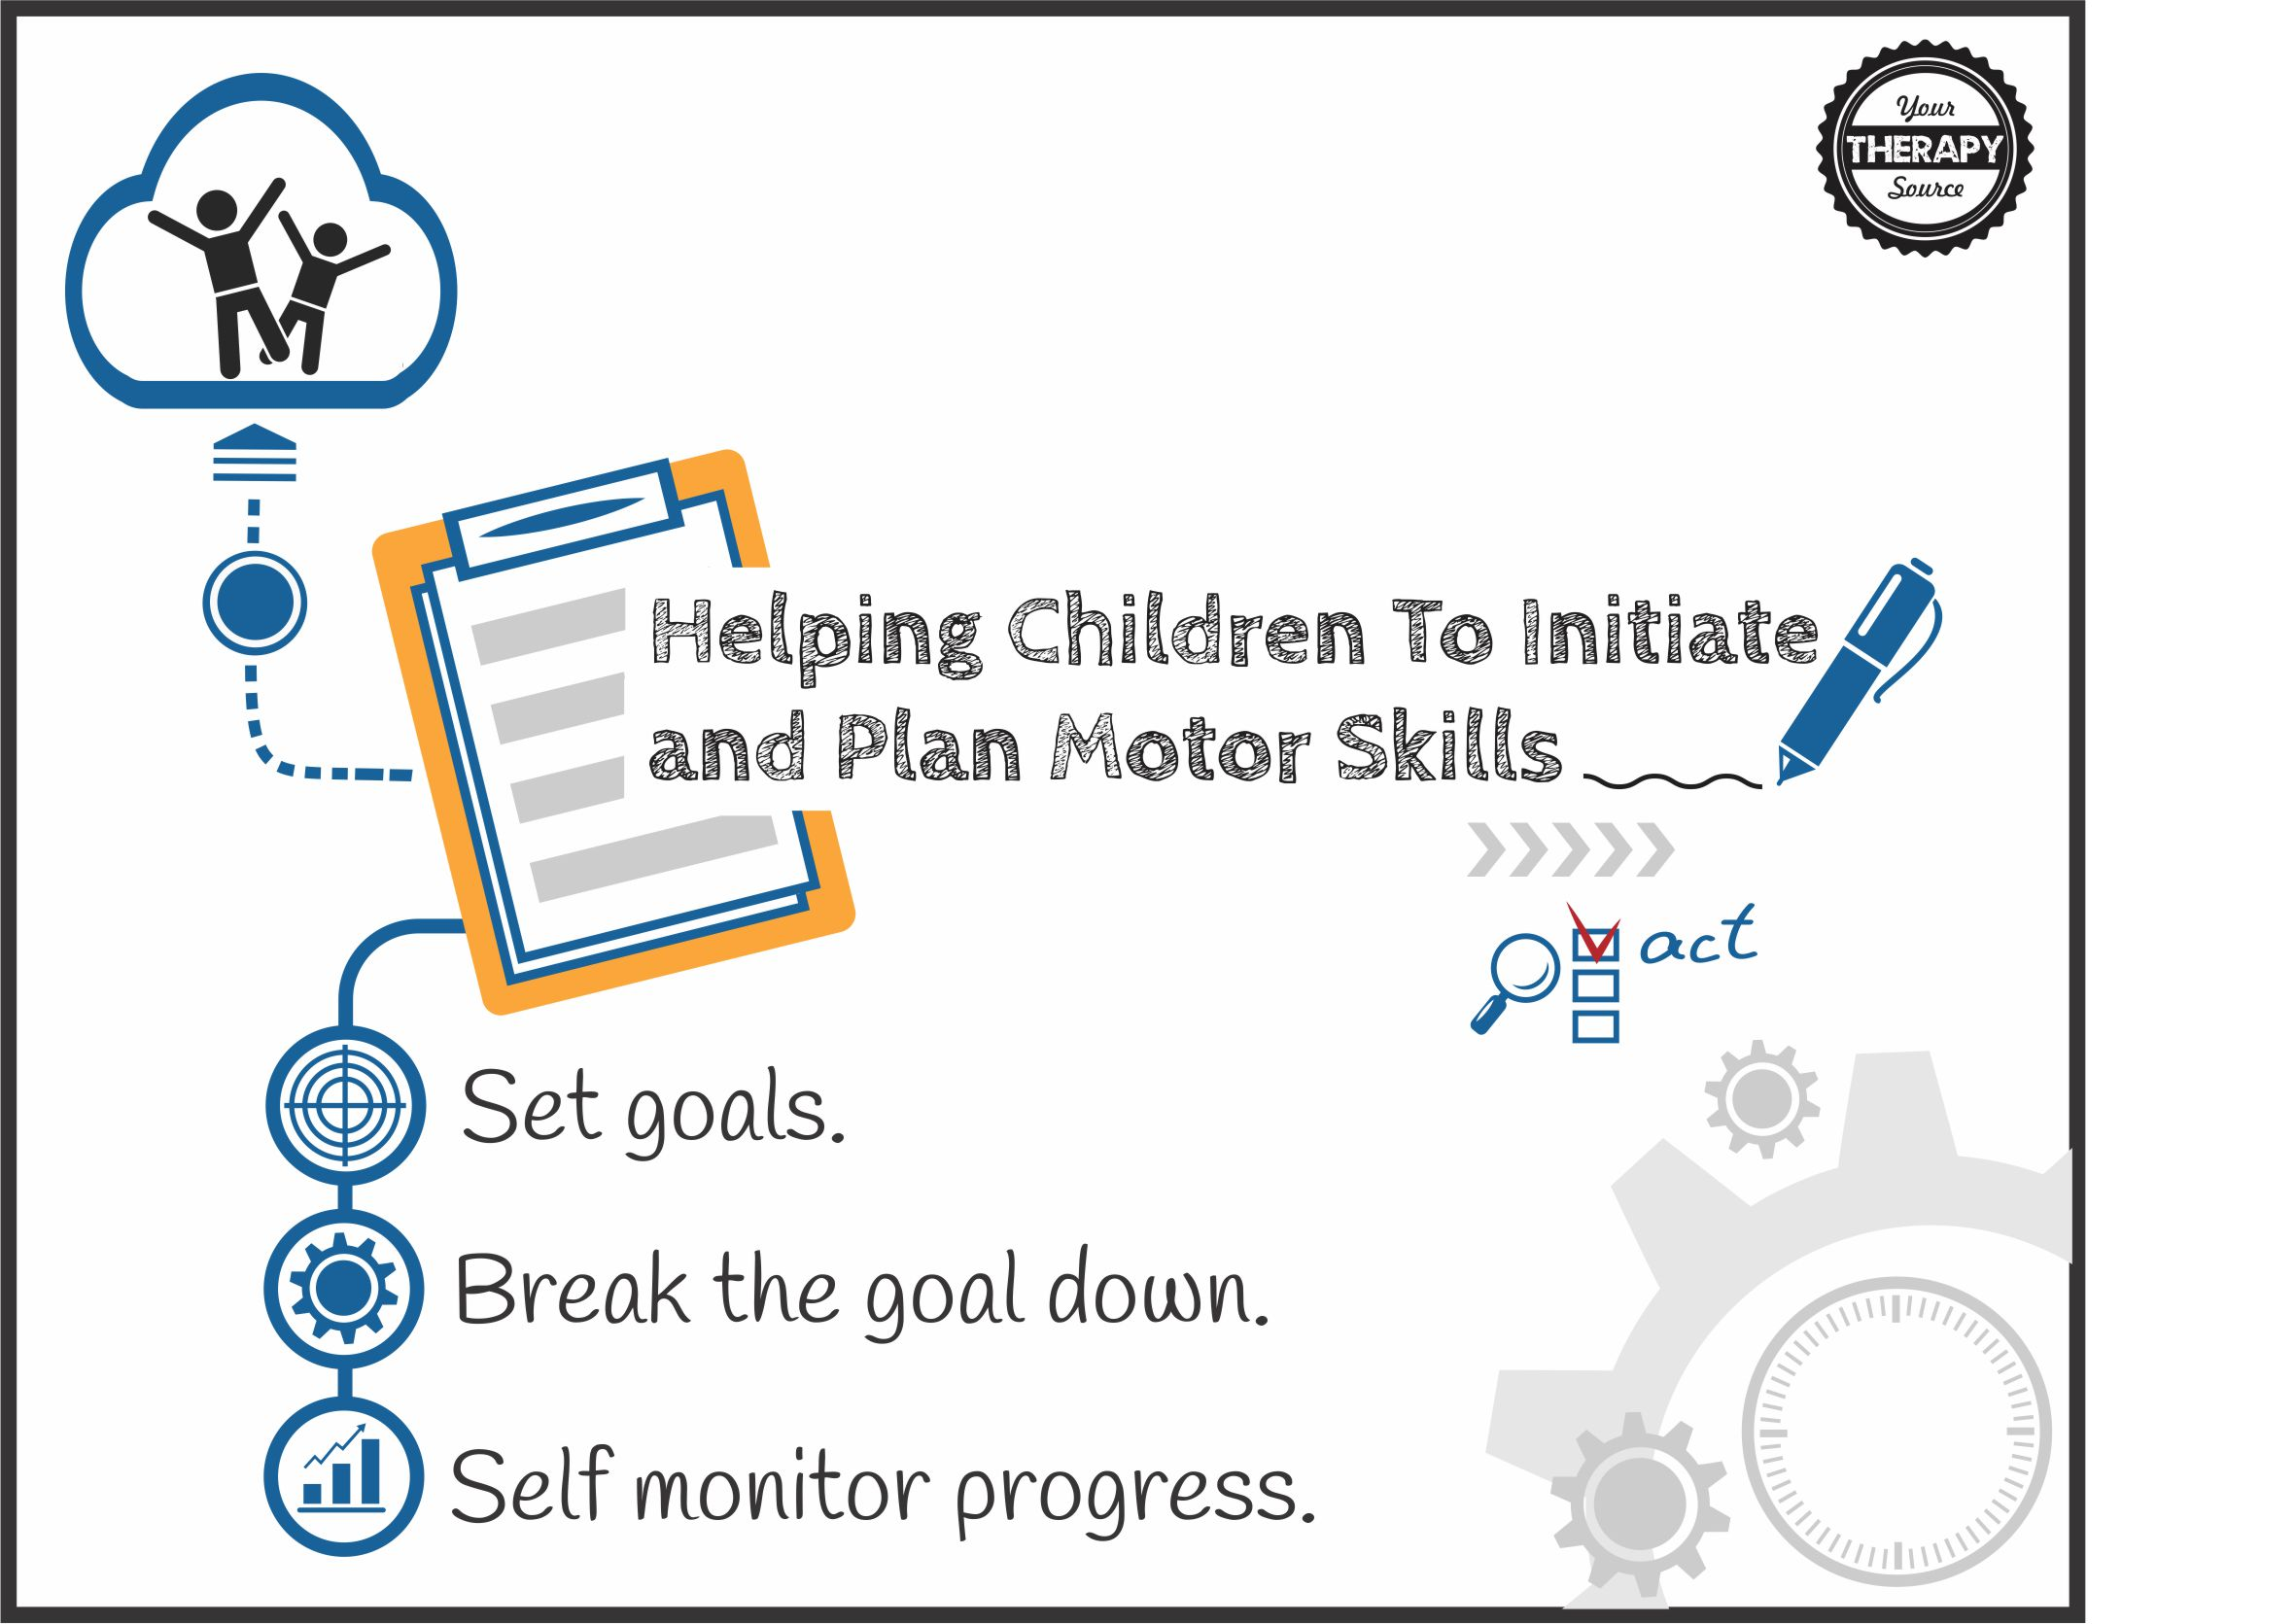 Are you a school-based therapist, parent, or teacher who help students on motor planning goals at occupational therapy, physical therapy, home or school?